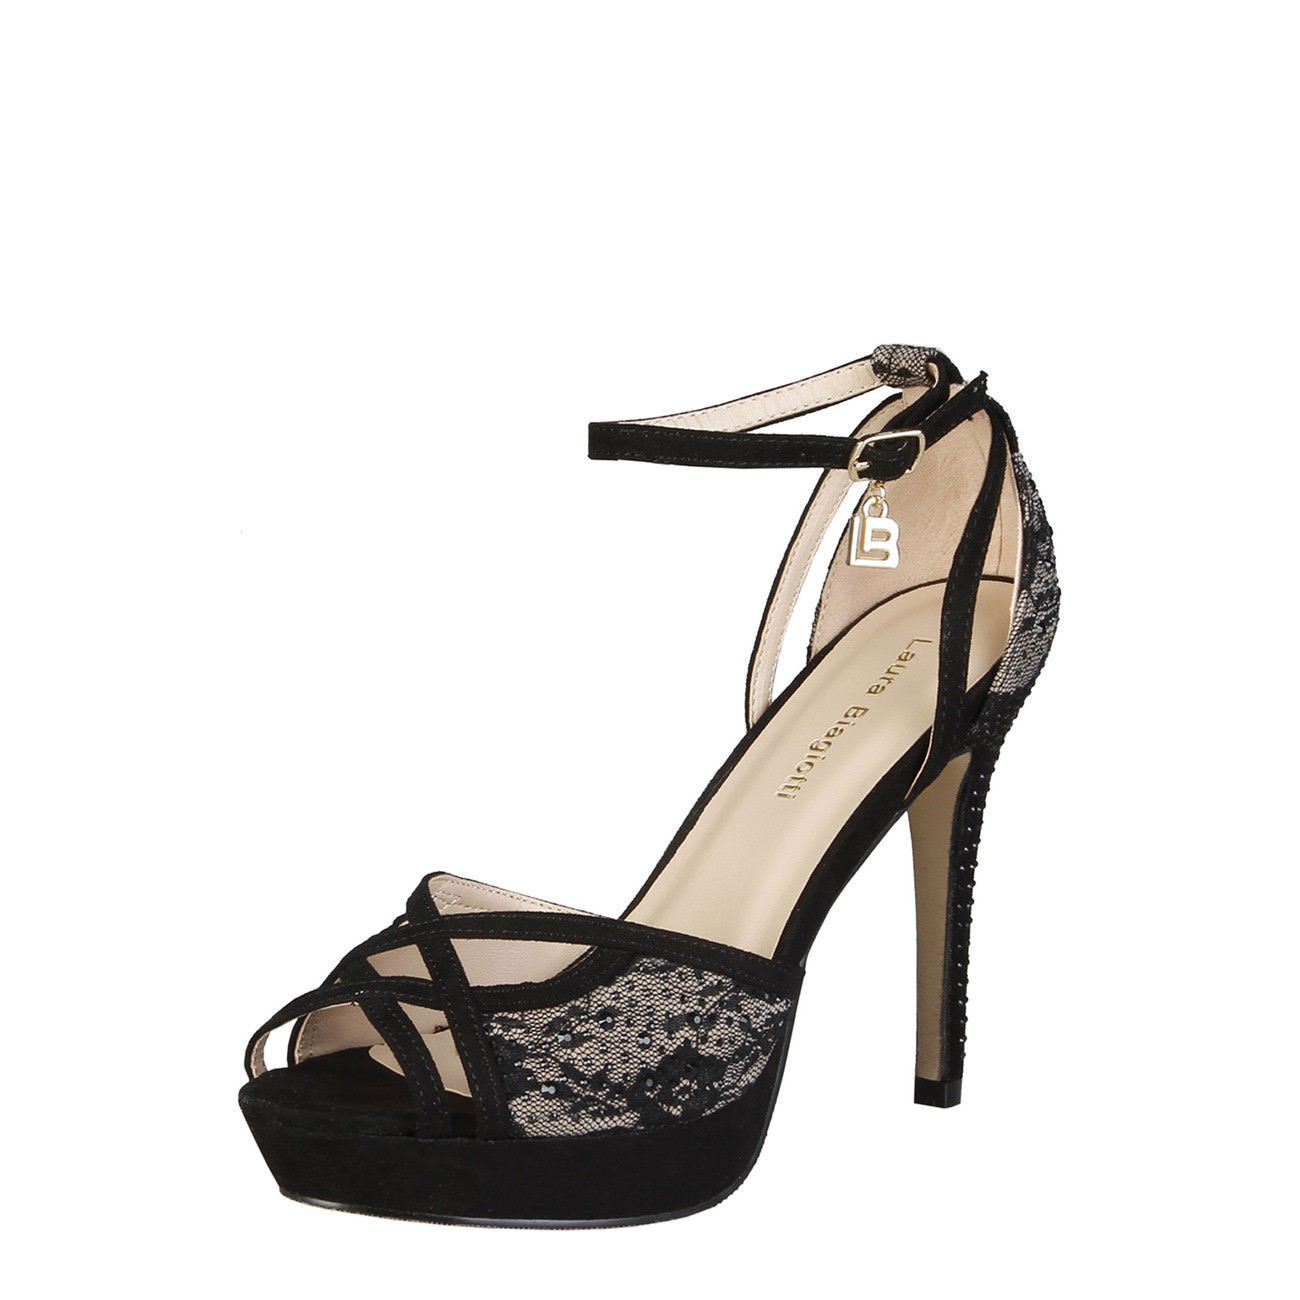 Womens Sexy Stiletto Sandals Shoes Laura Biagiotti - 423_CLOTH Black Beige Heel